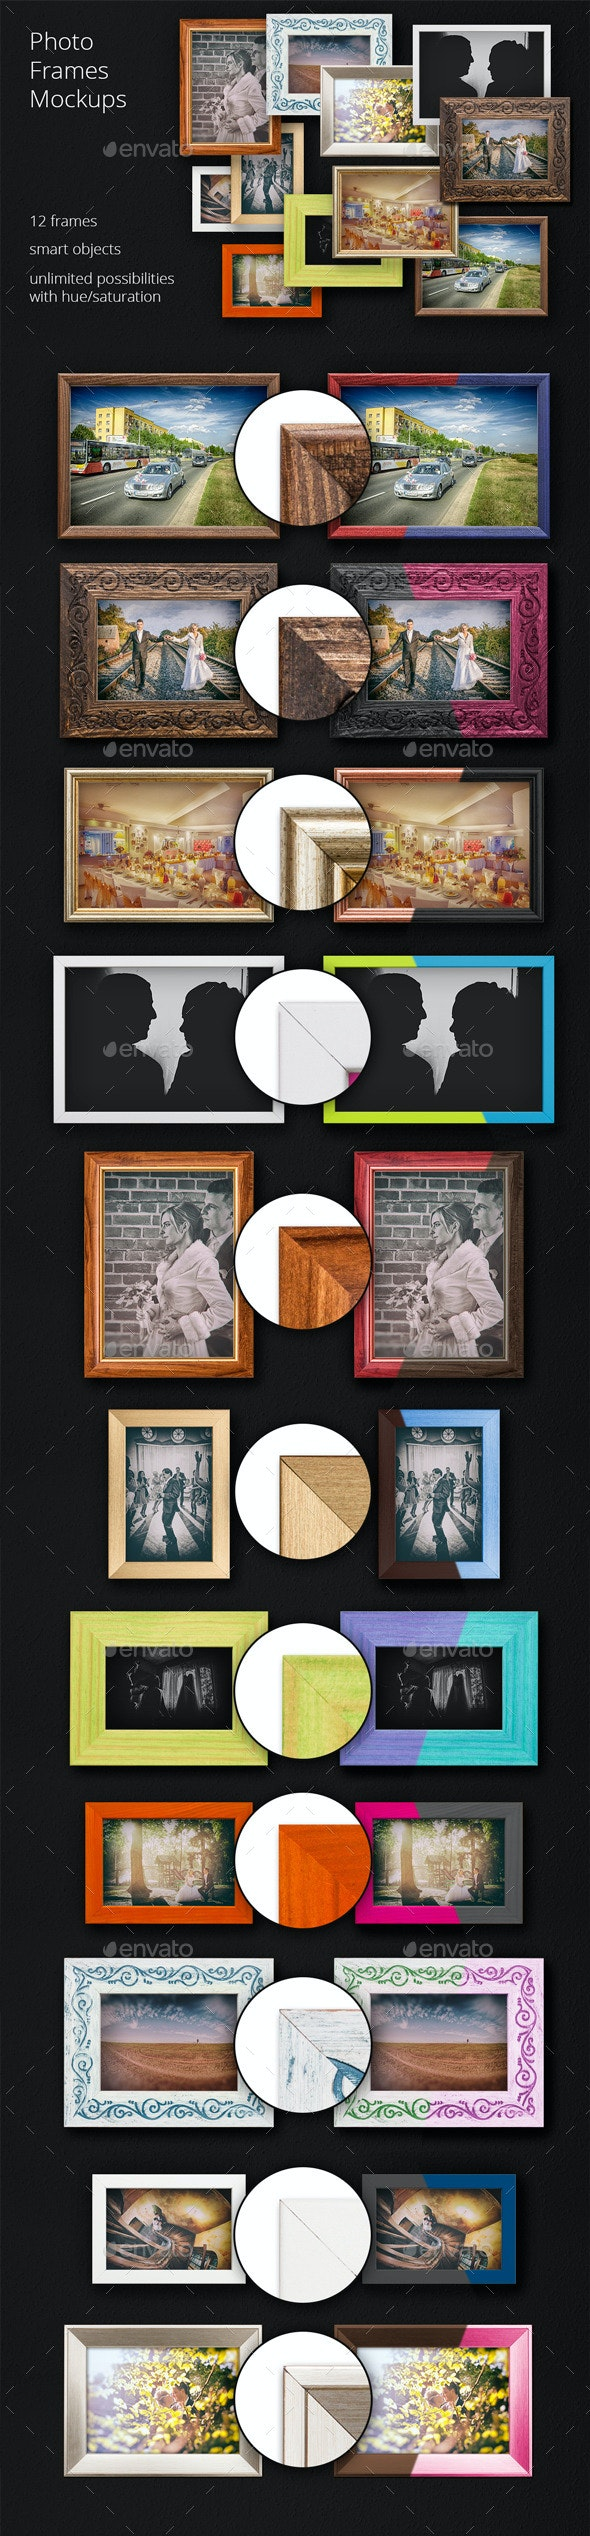 11 Photo Frame Mockups - Photo Templates Graphics